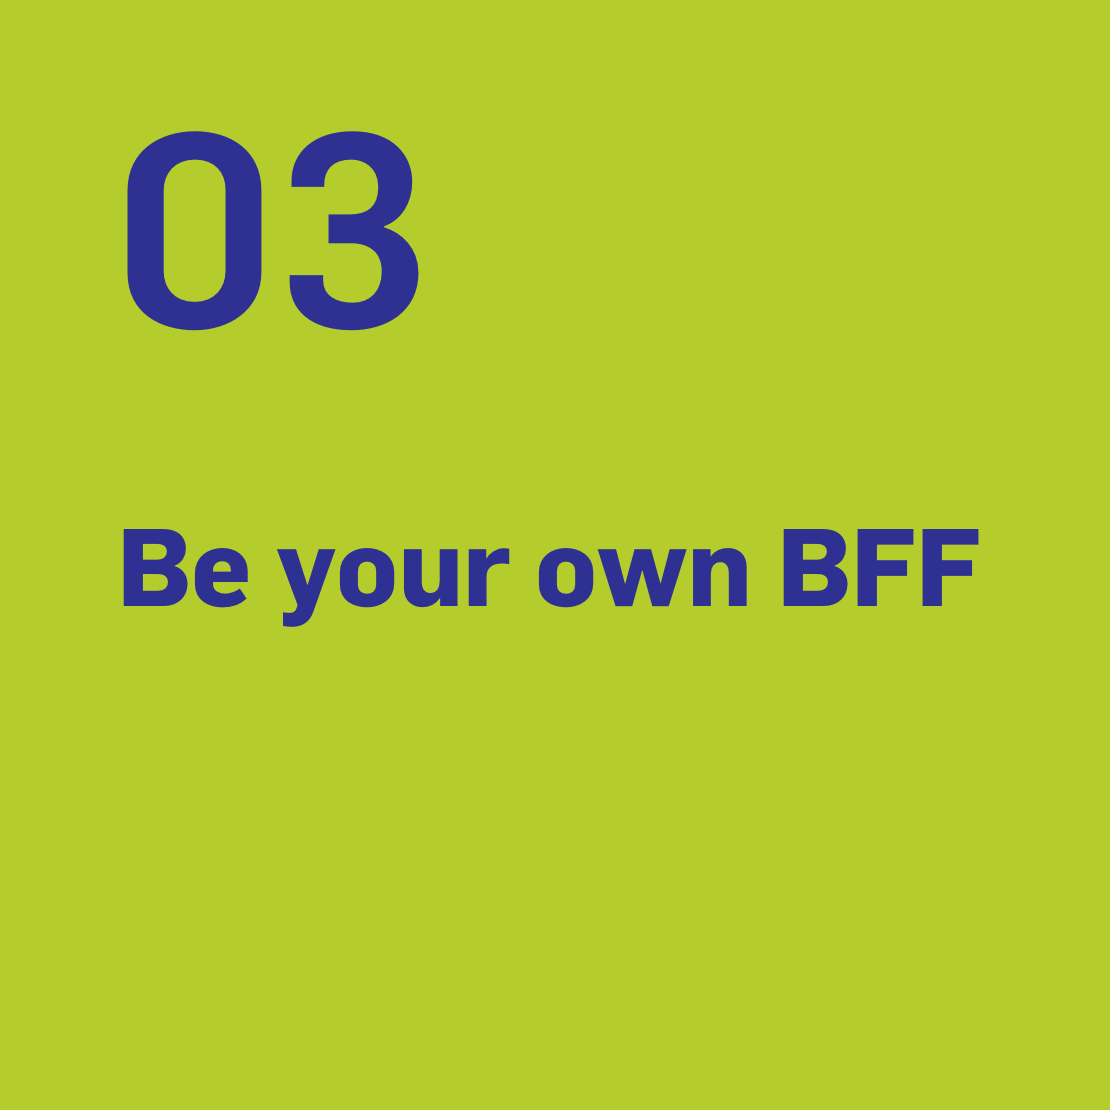 3. Be your own BFF